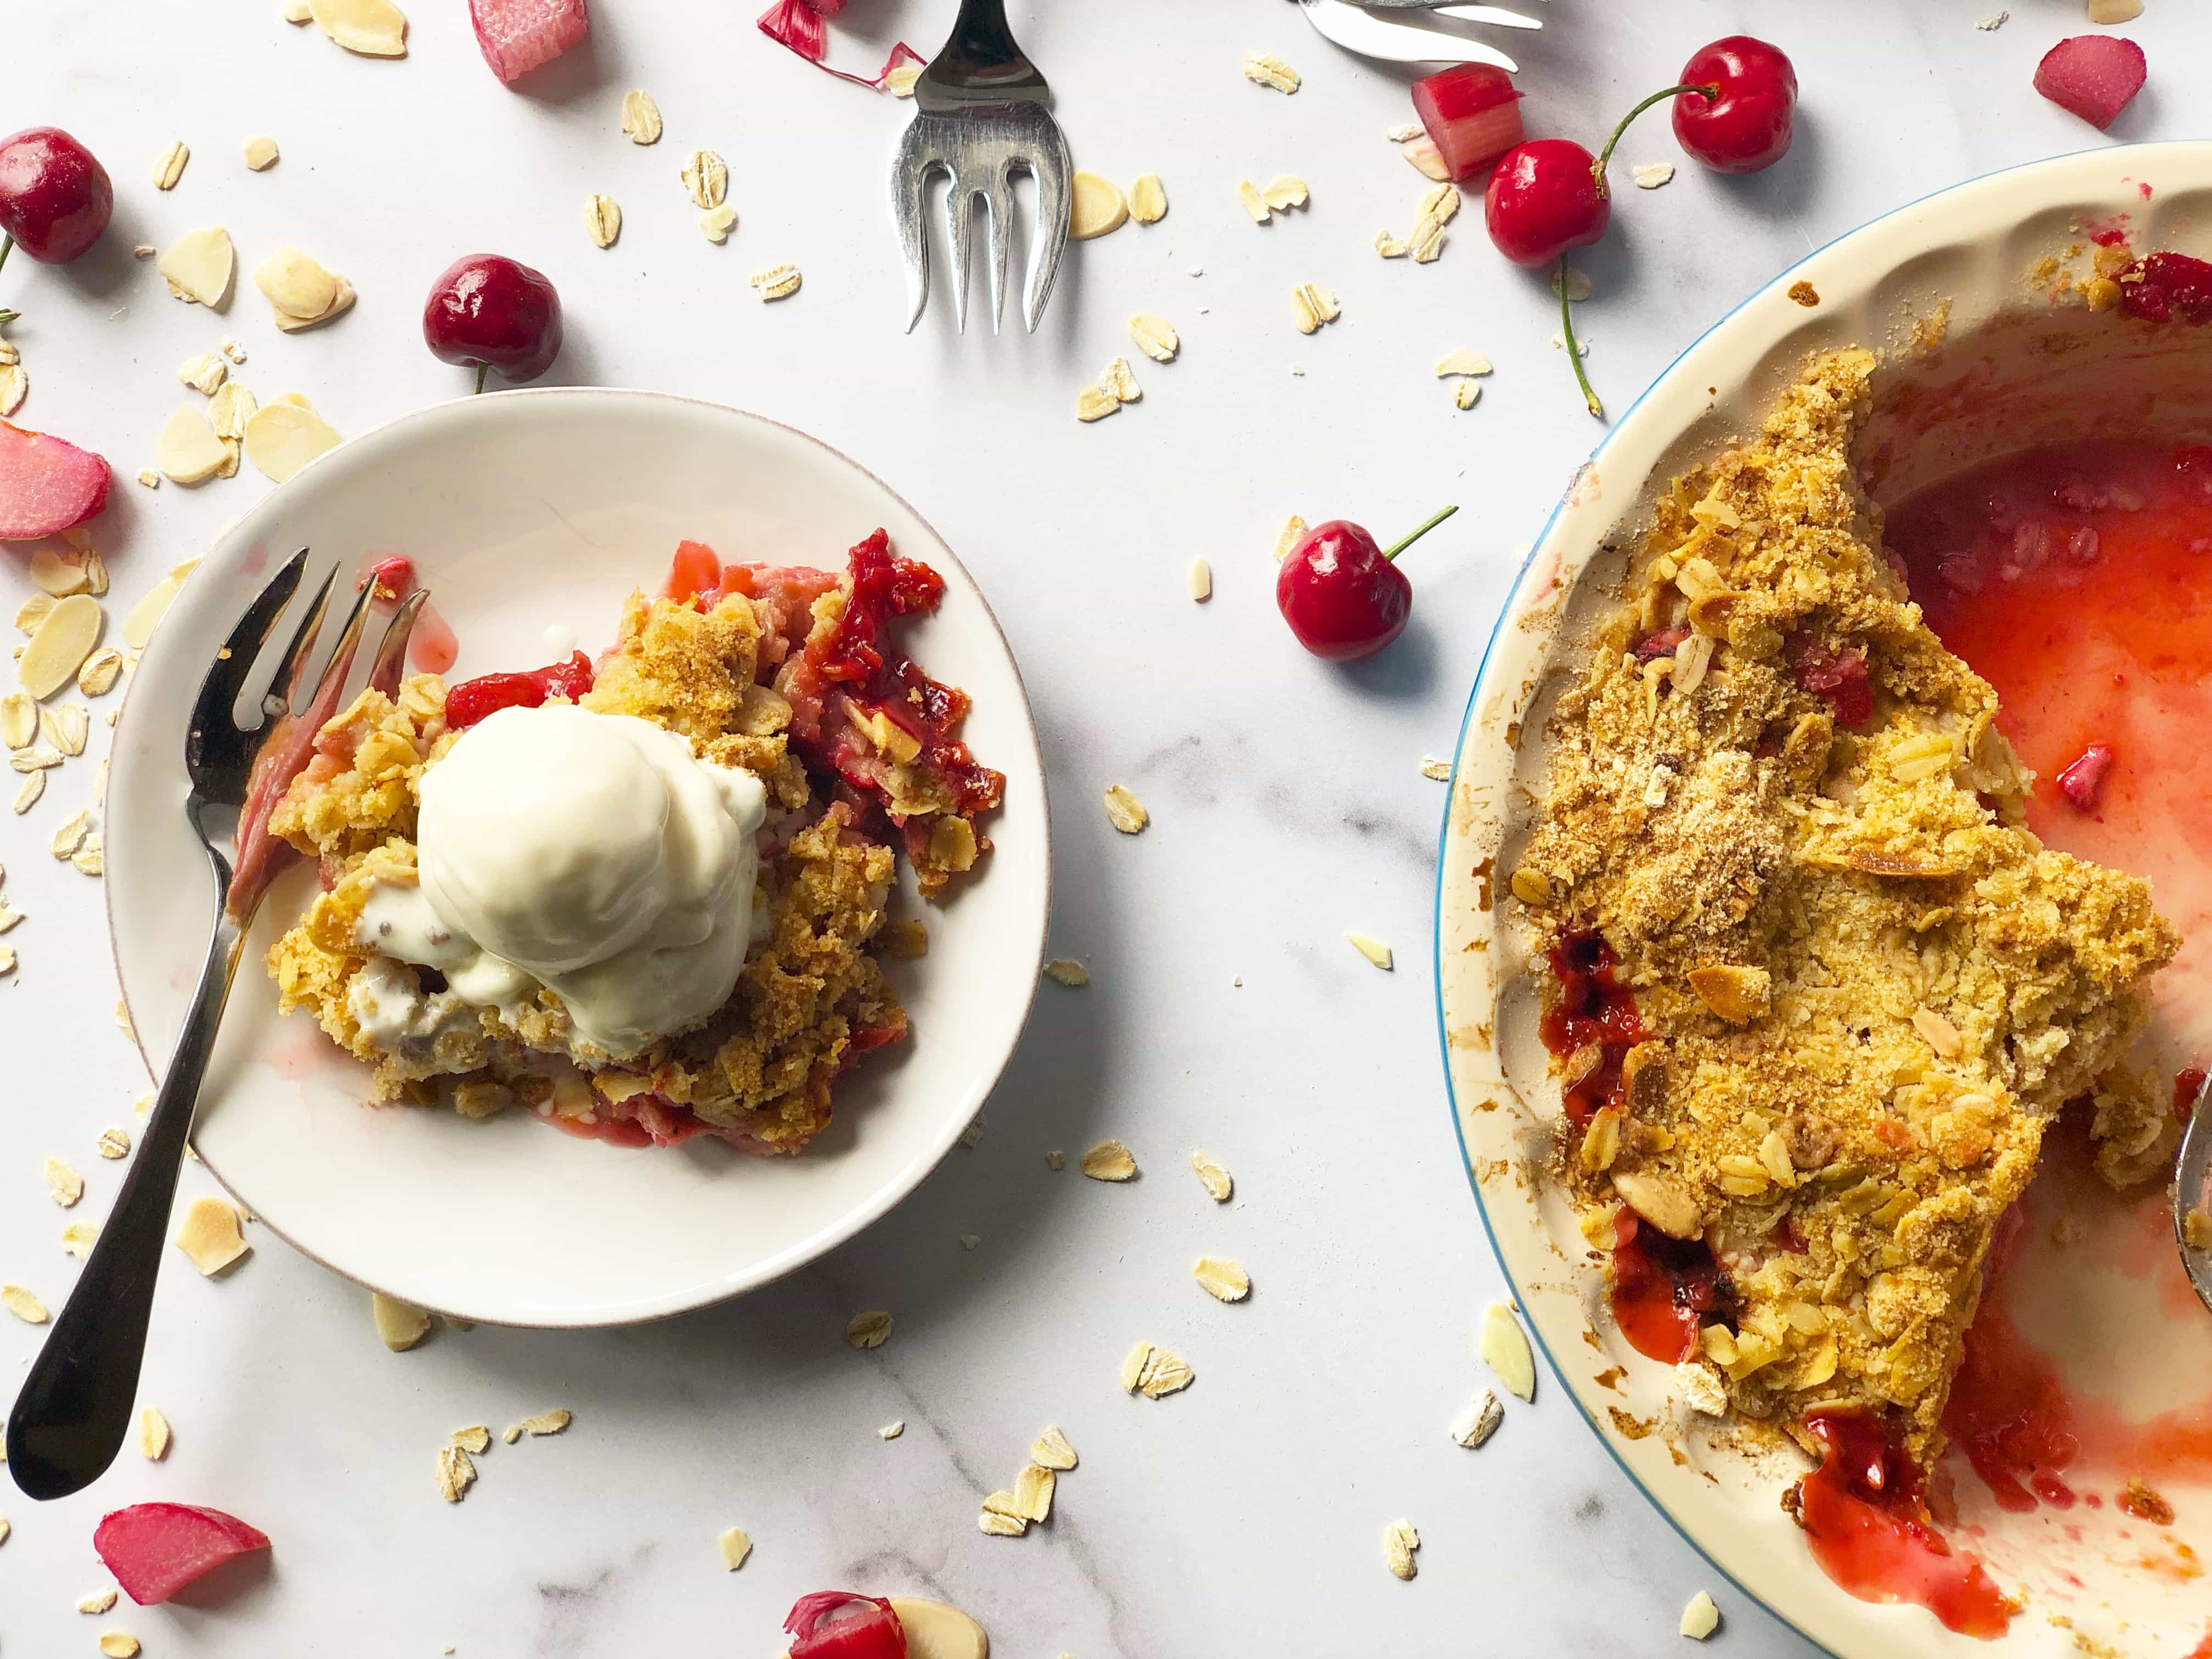 Strawberry Rhubarb Cherry Crisp with Ice Cream